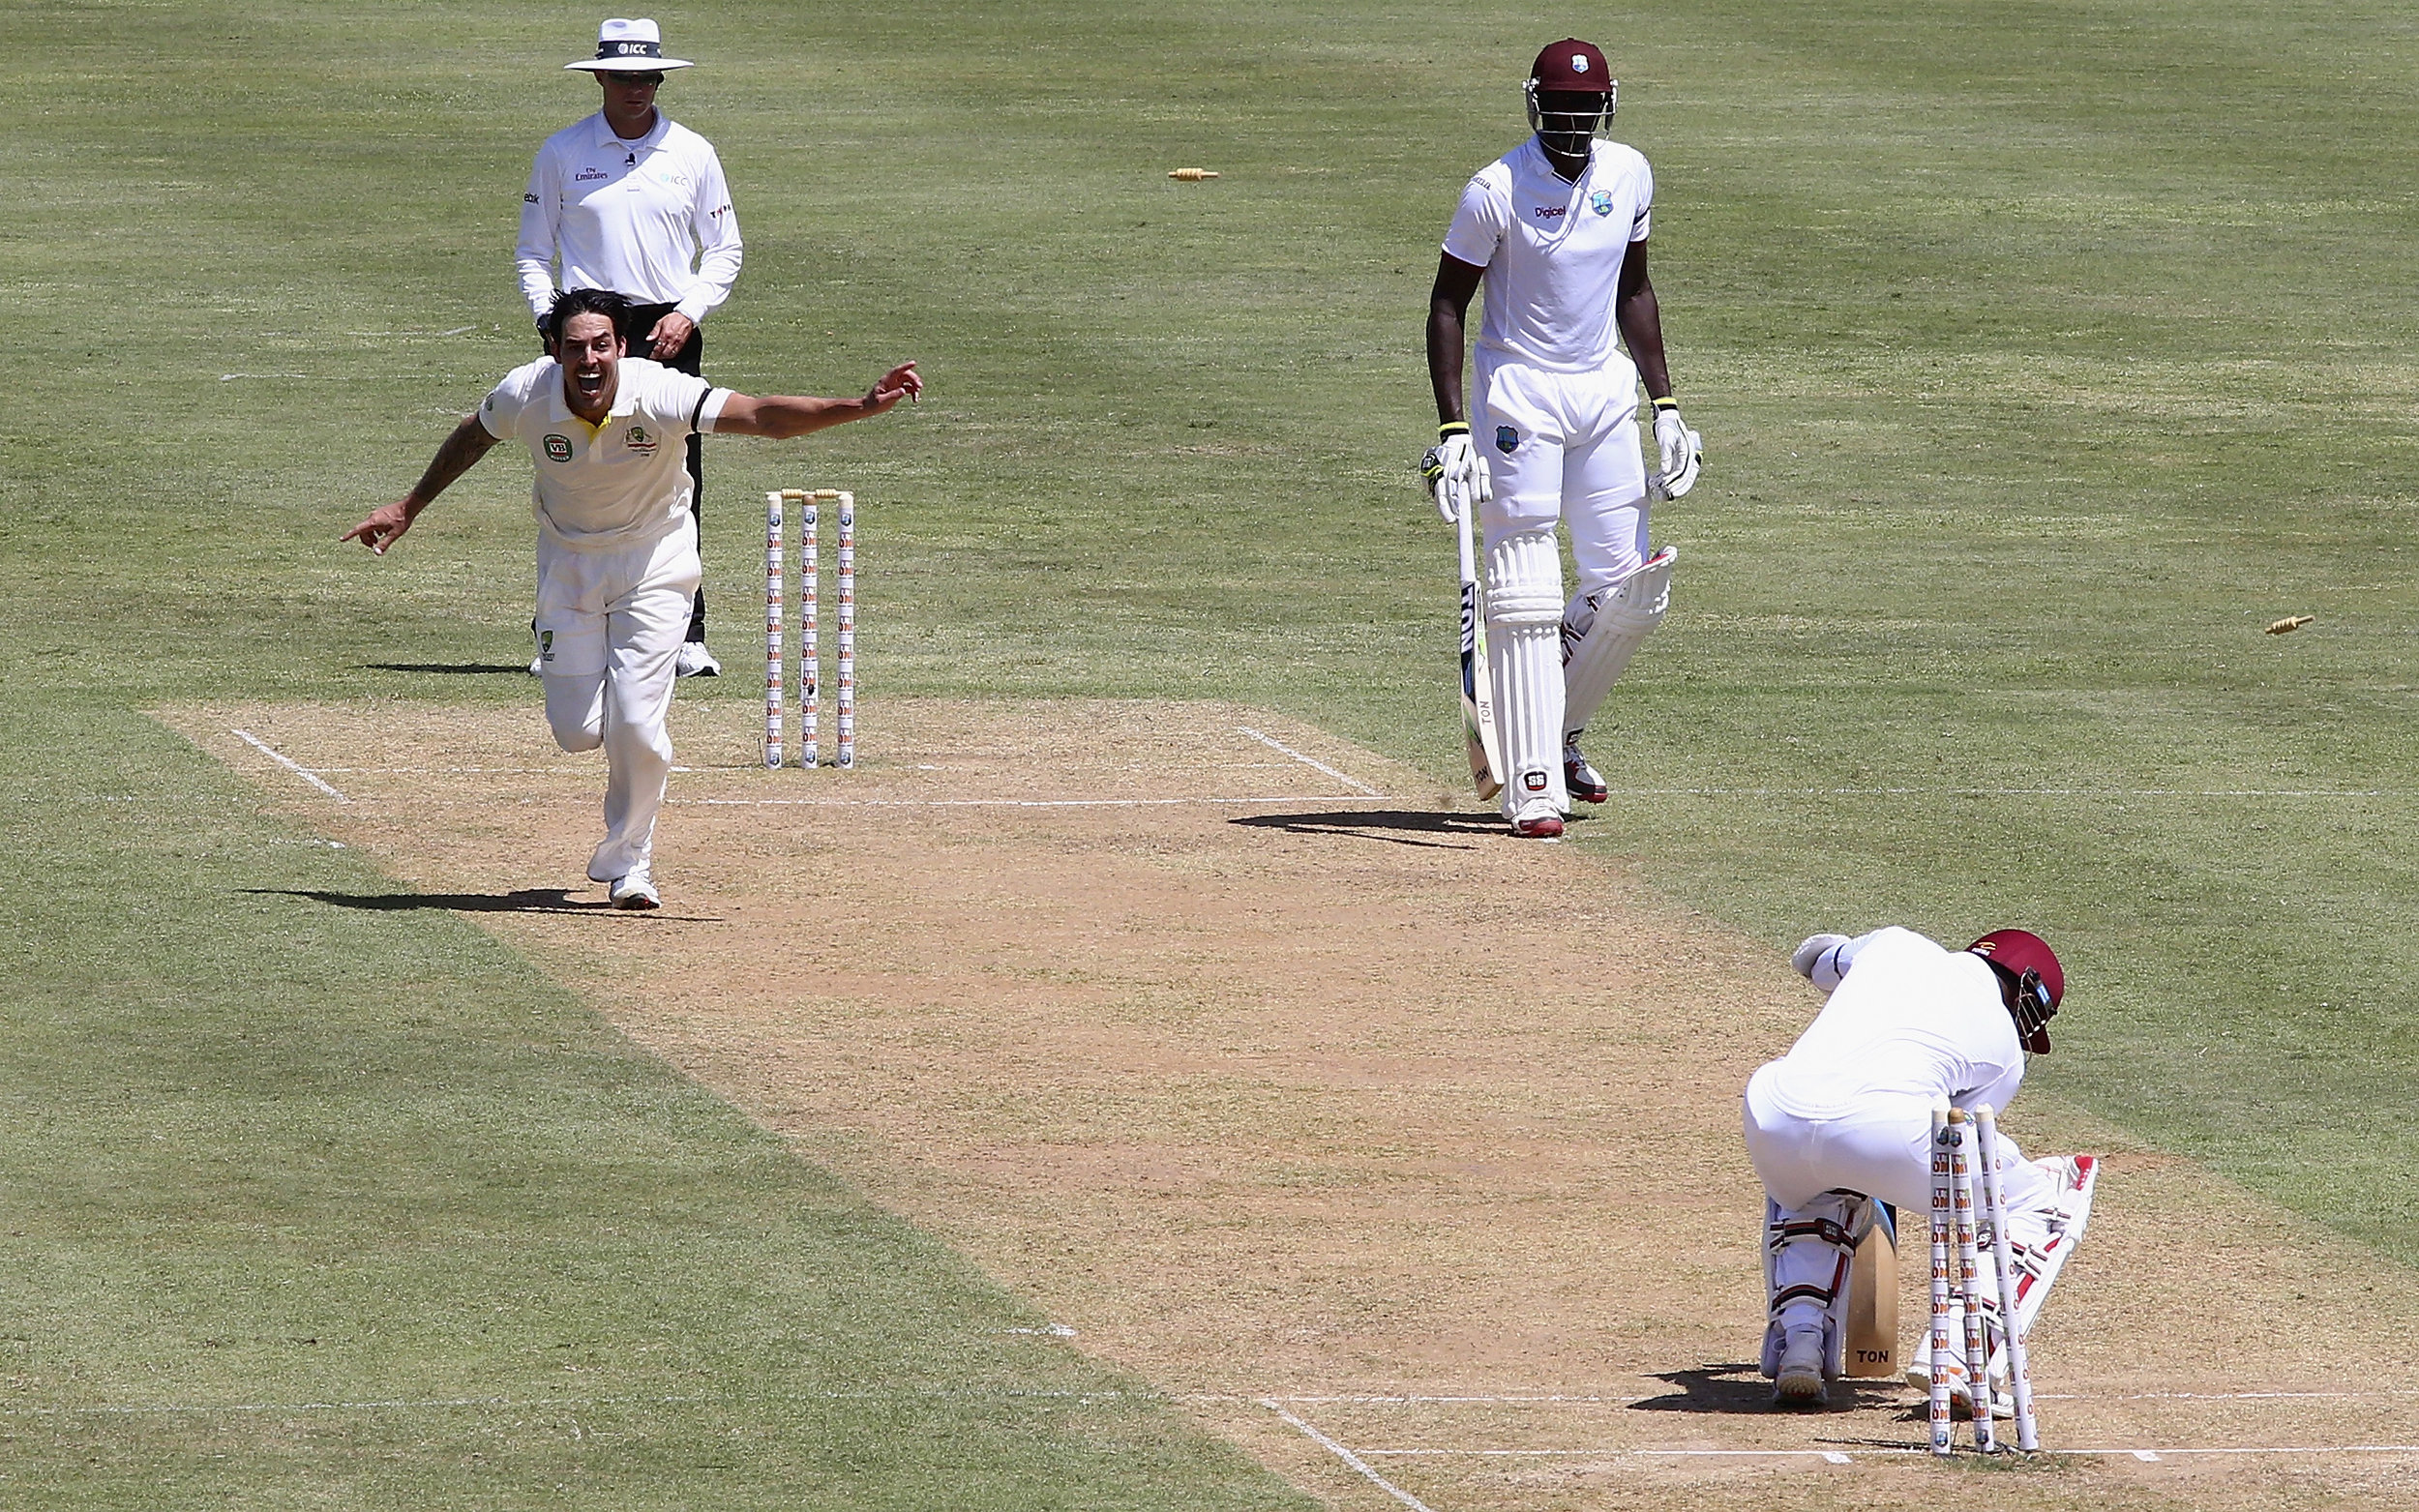 Mitchell Johnson celebrates after bowling Denesh Ramdin of West Indies